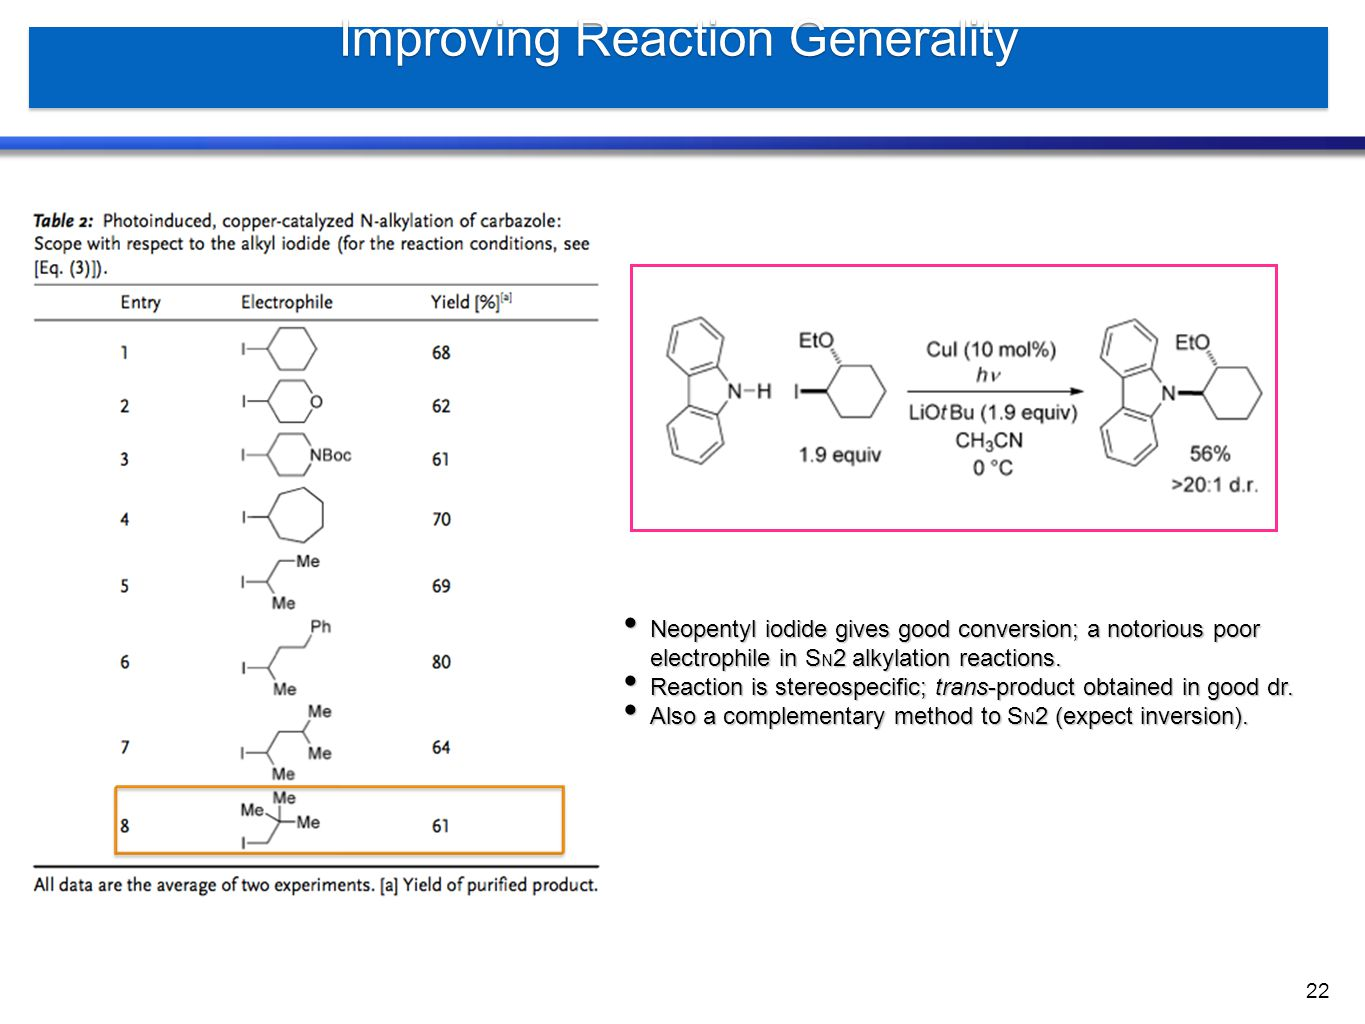 Improving Reaction Generality